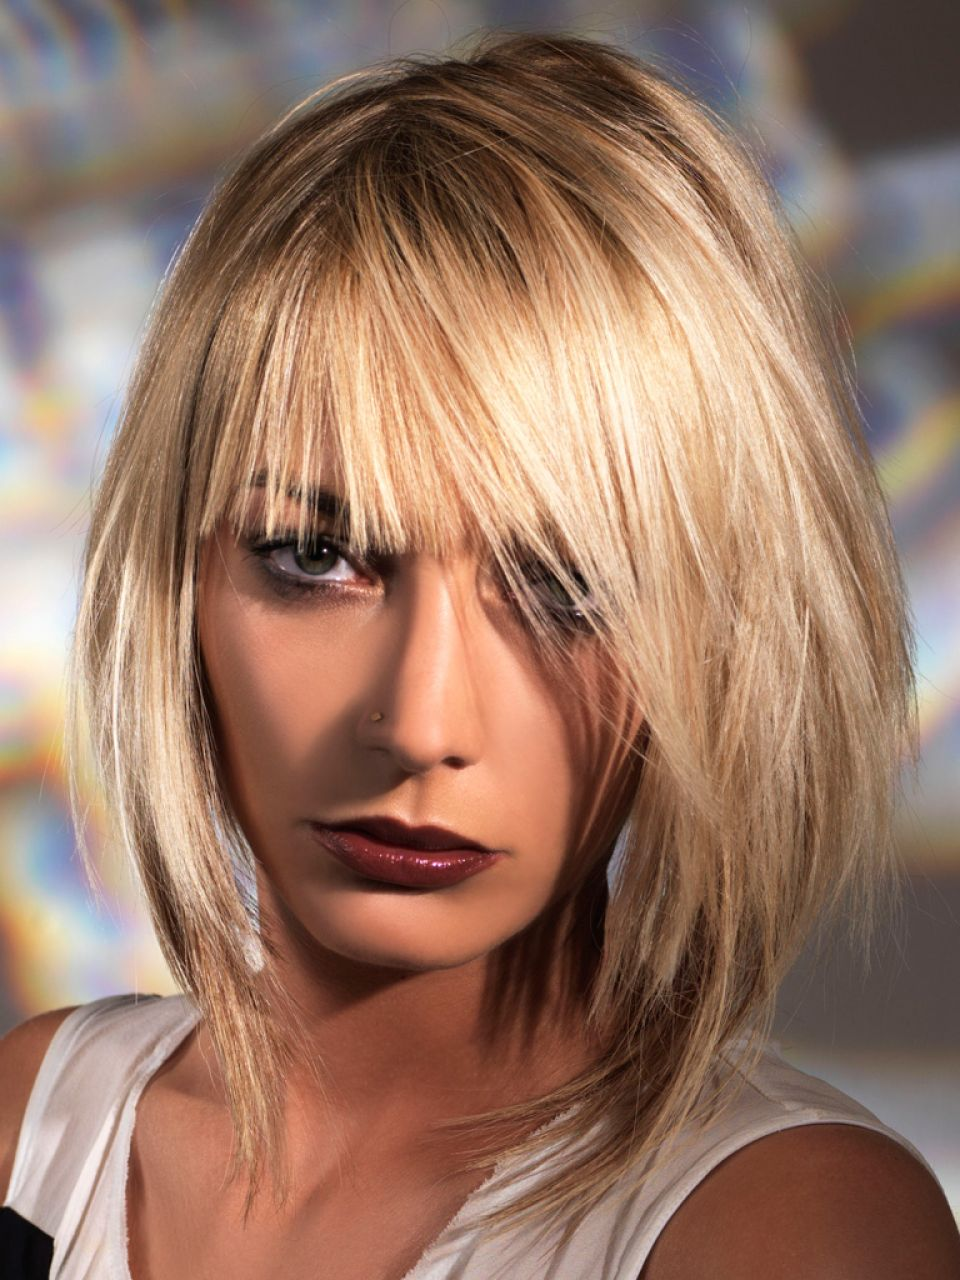 Unsere Top 20 Blonde Damenfrisuren Platz 20